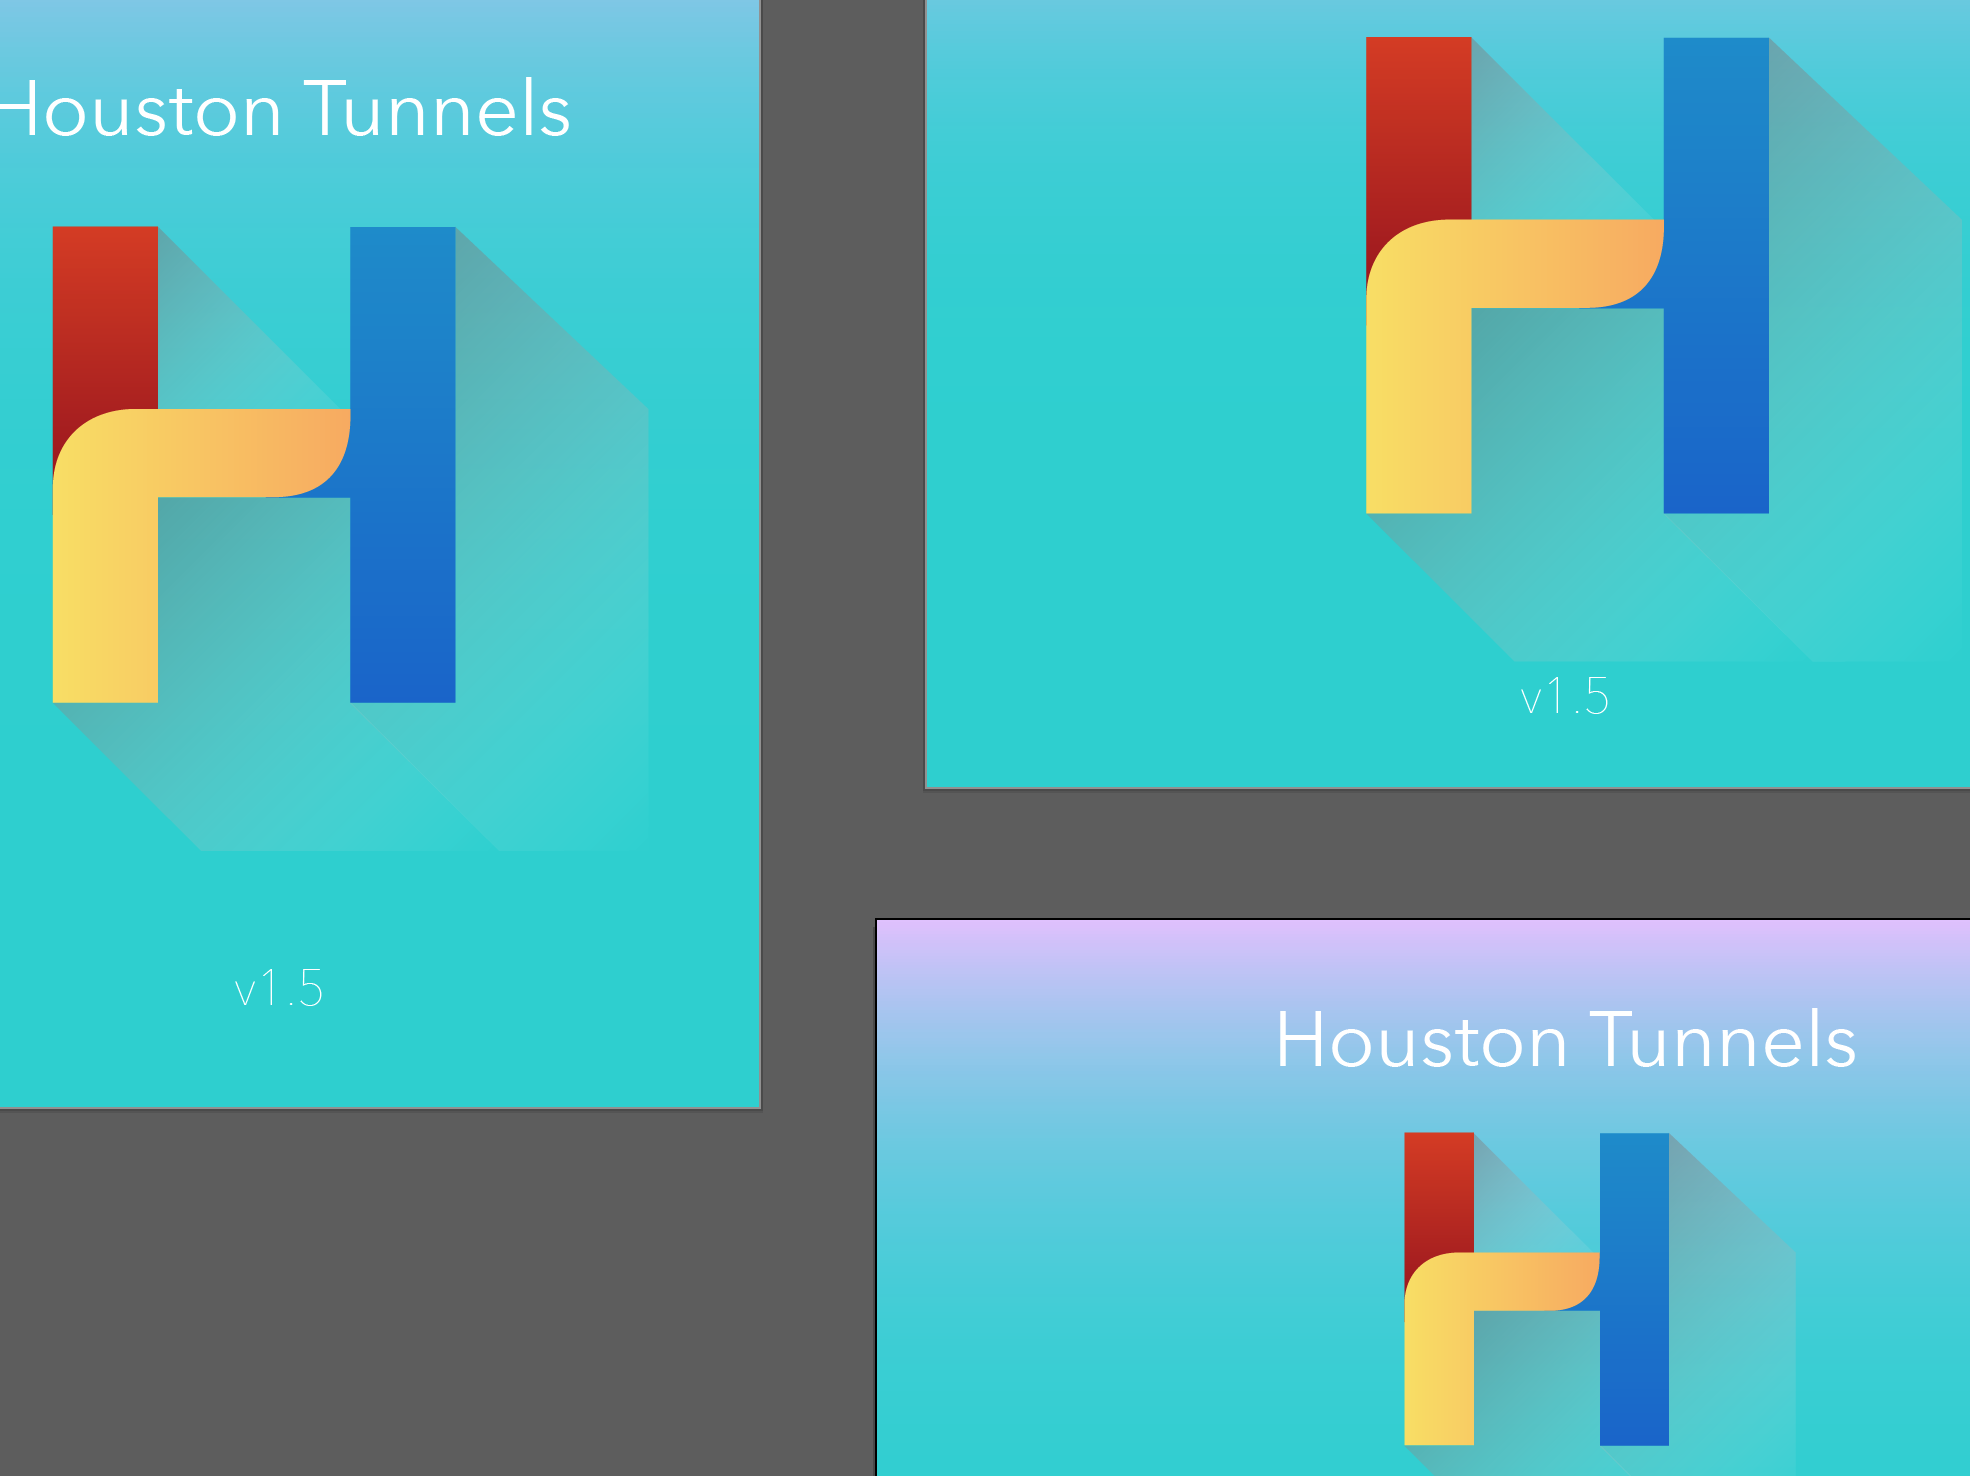 Houston Tunnels Launch Images screenshot